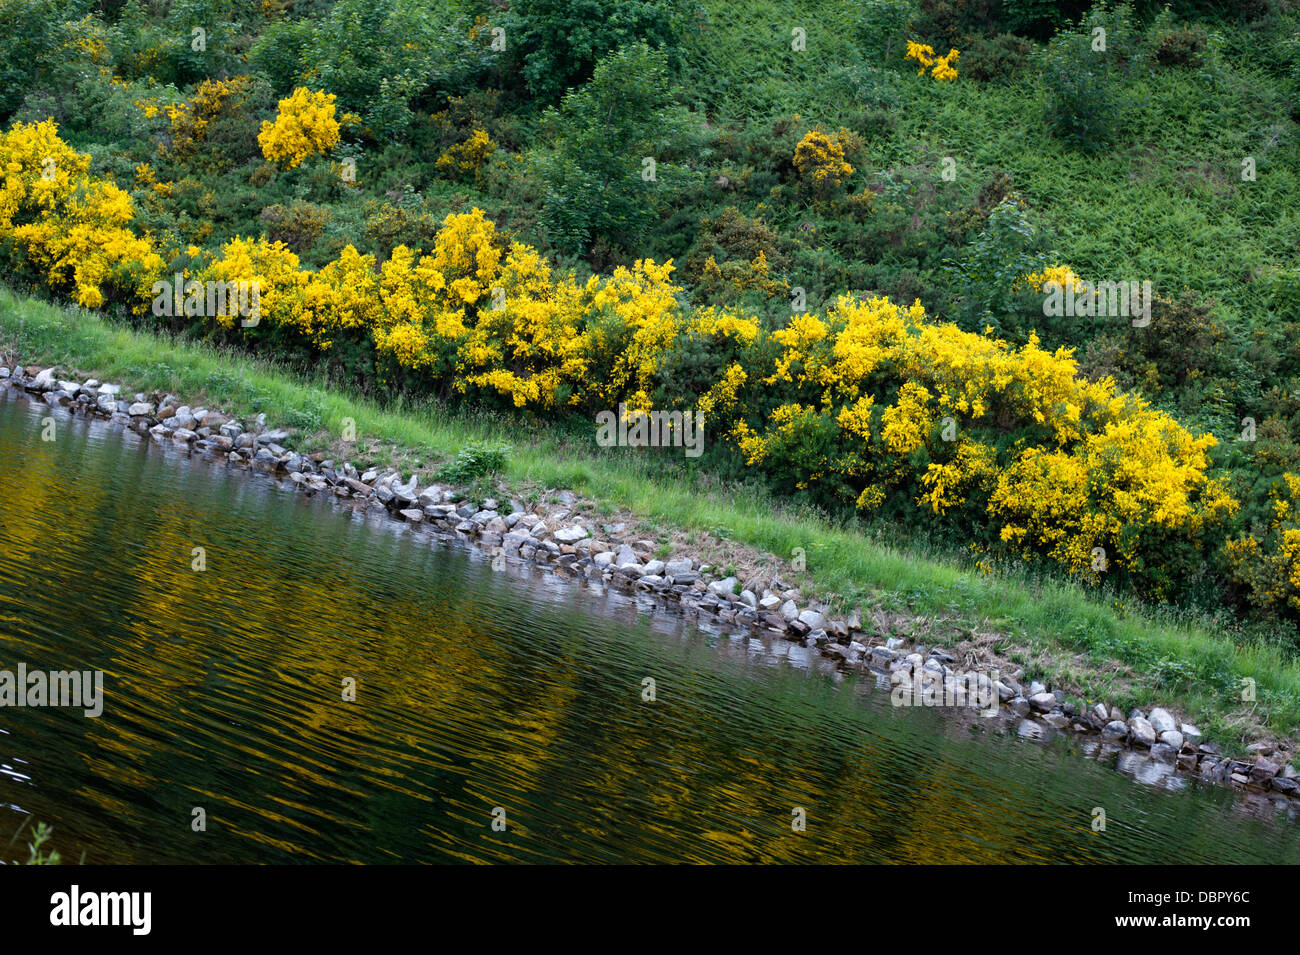 Unusual angle view of the Caledonian Canal near Inverness Scotland - Stock Image